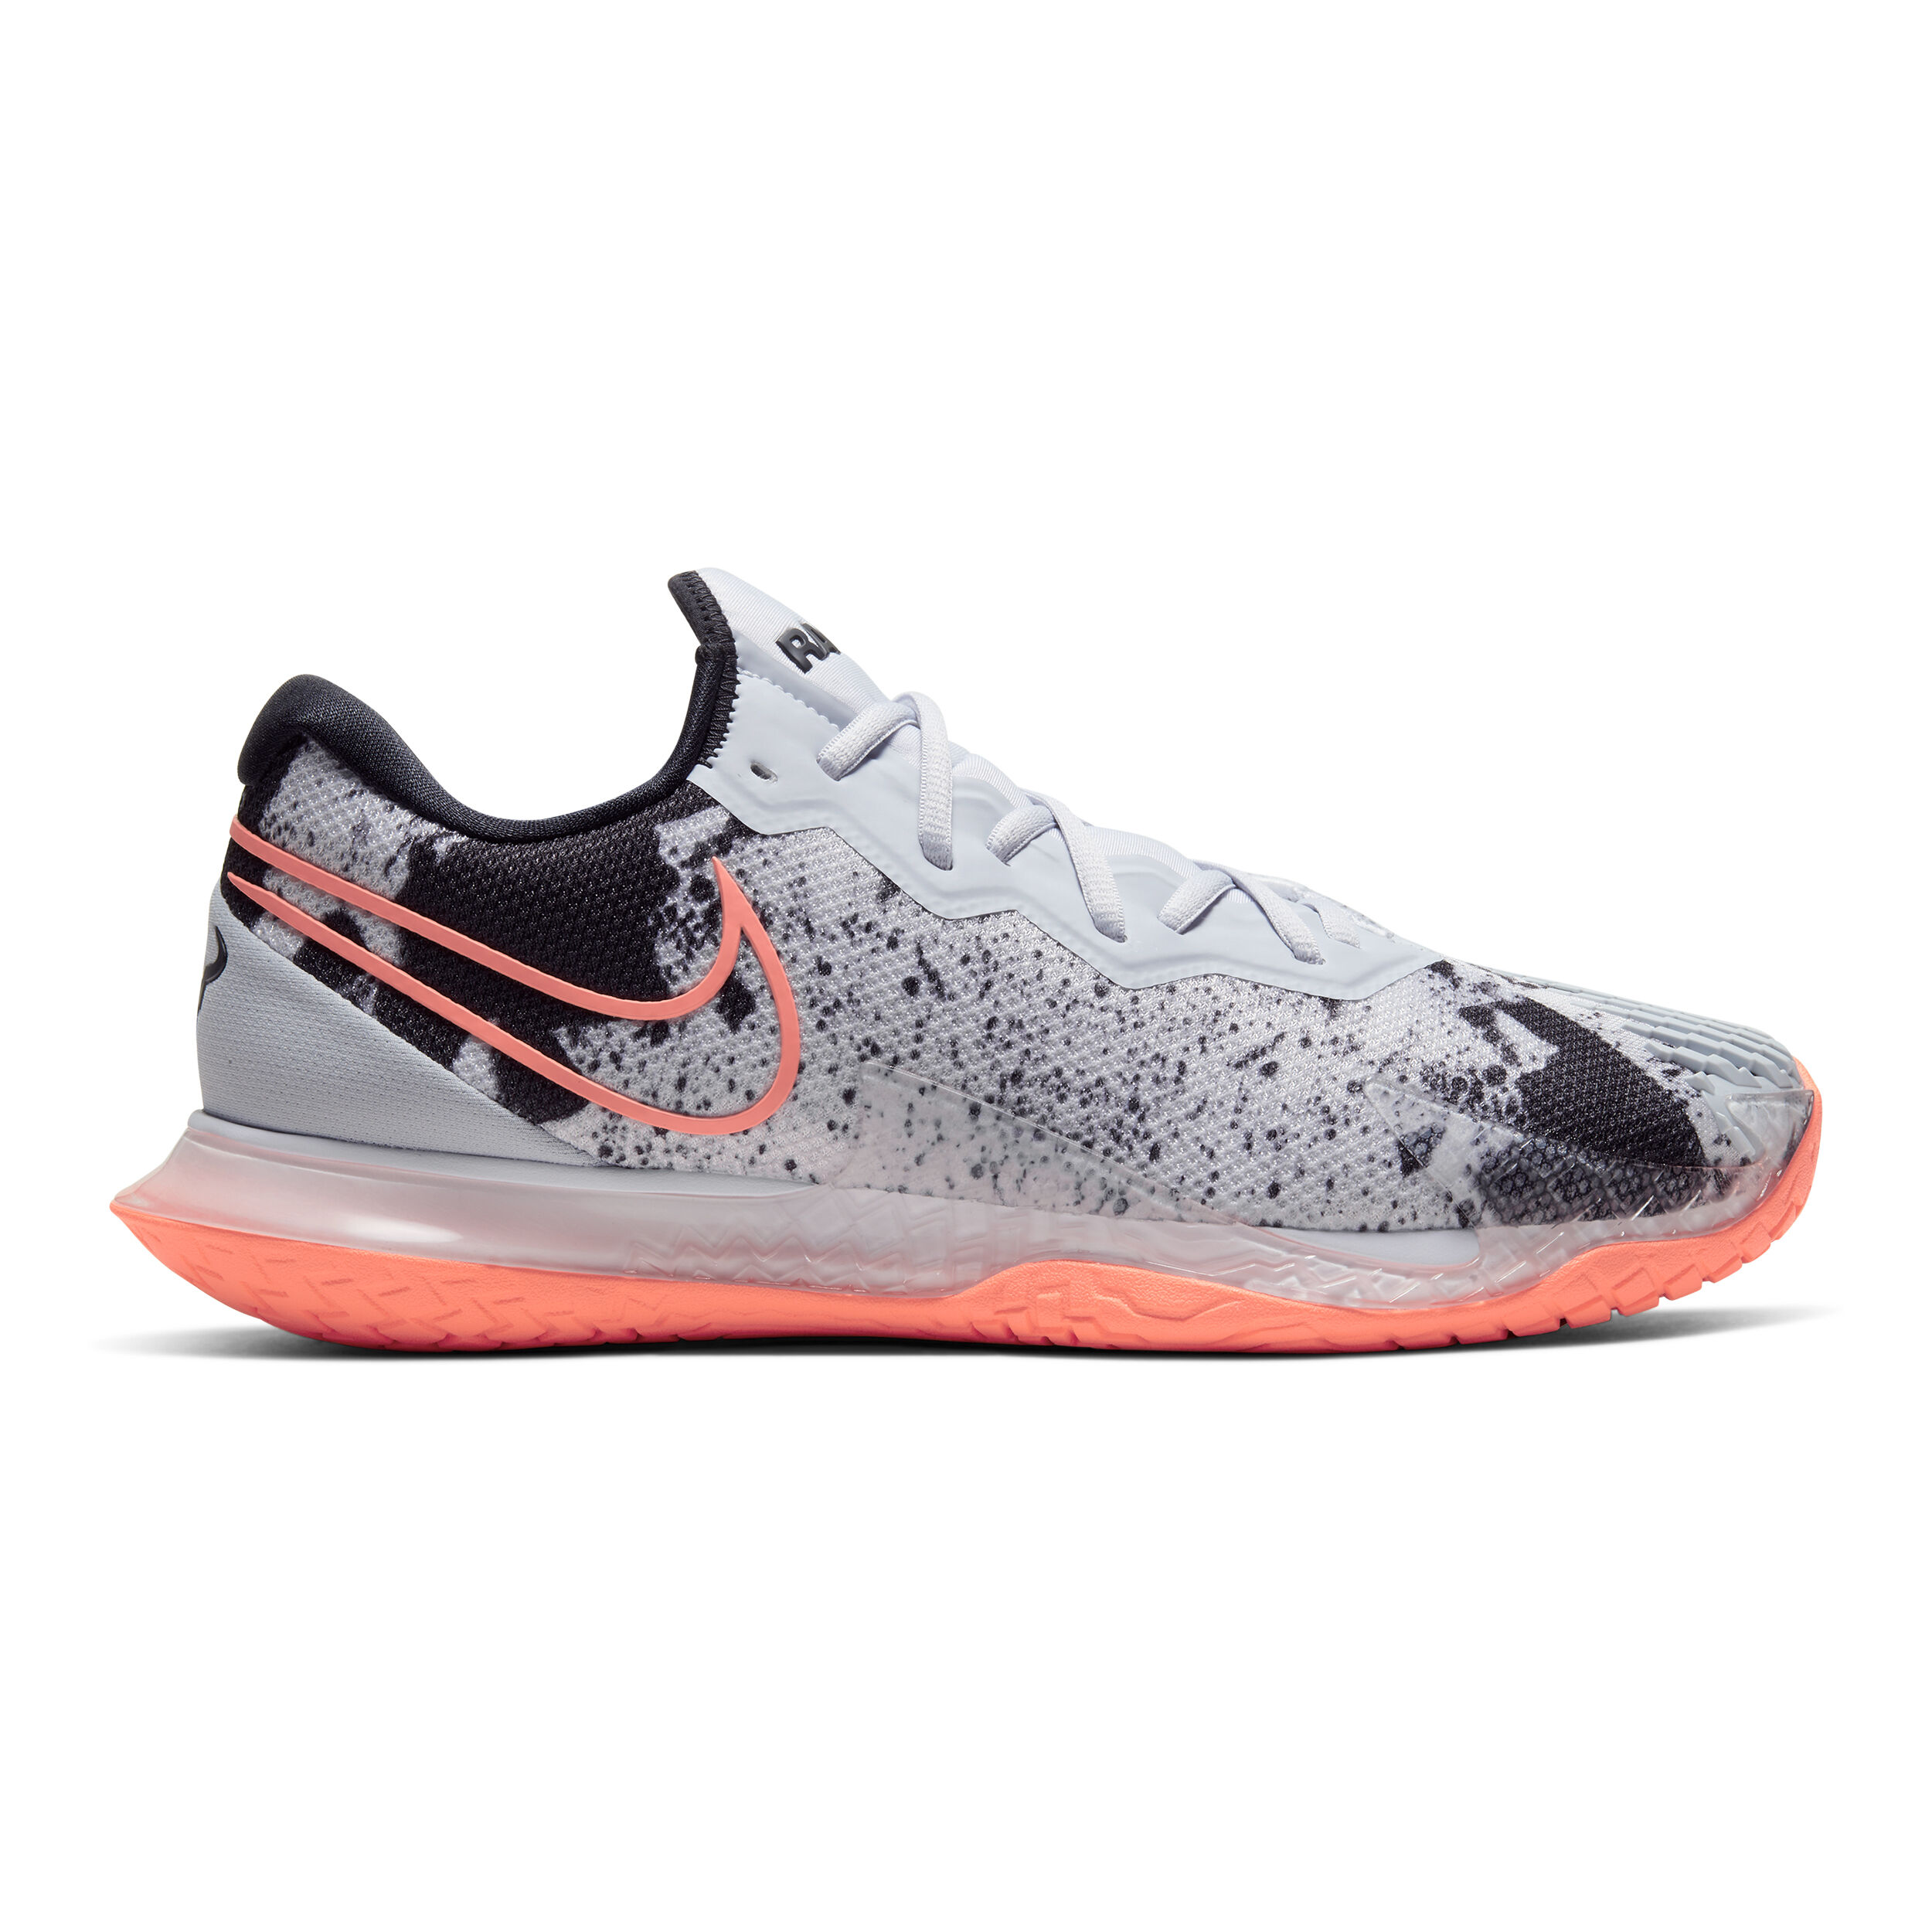 Nike Air Zoom Vapor Cage 4 Asteroid Chaussures Toutes Surfaces ...